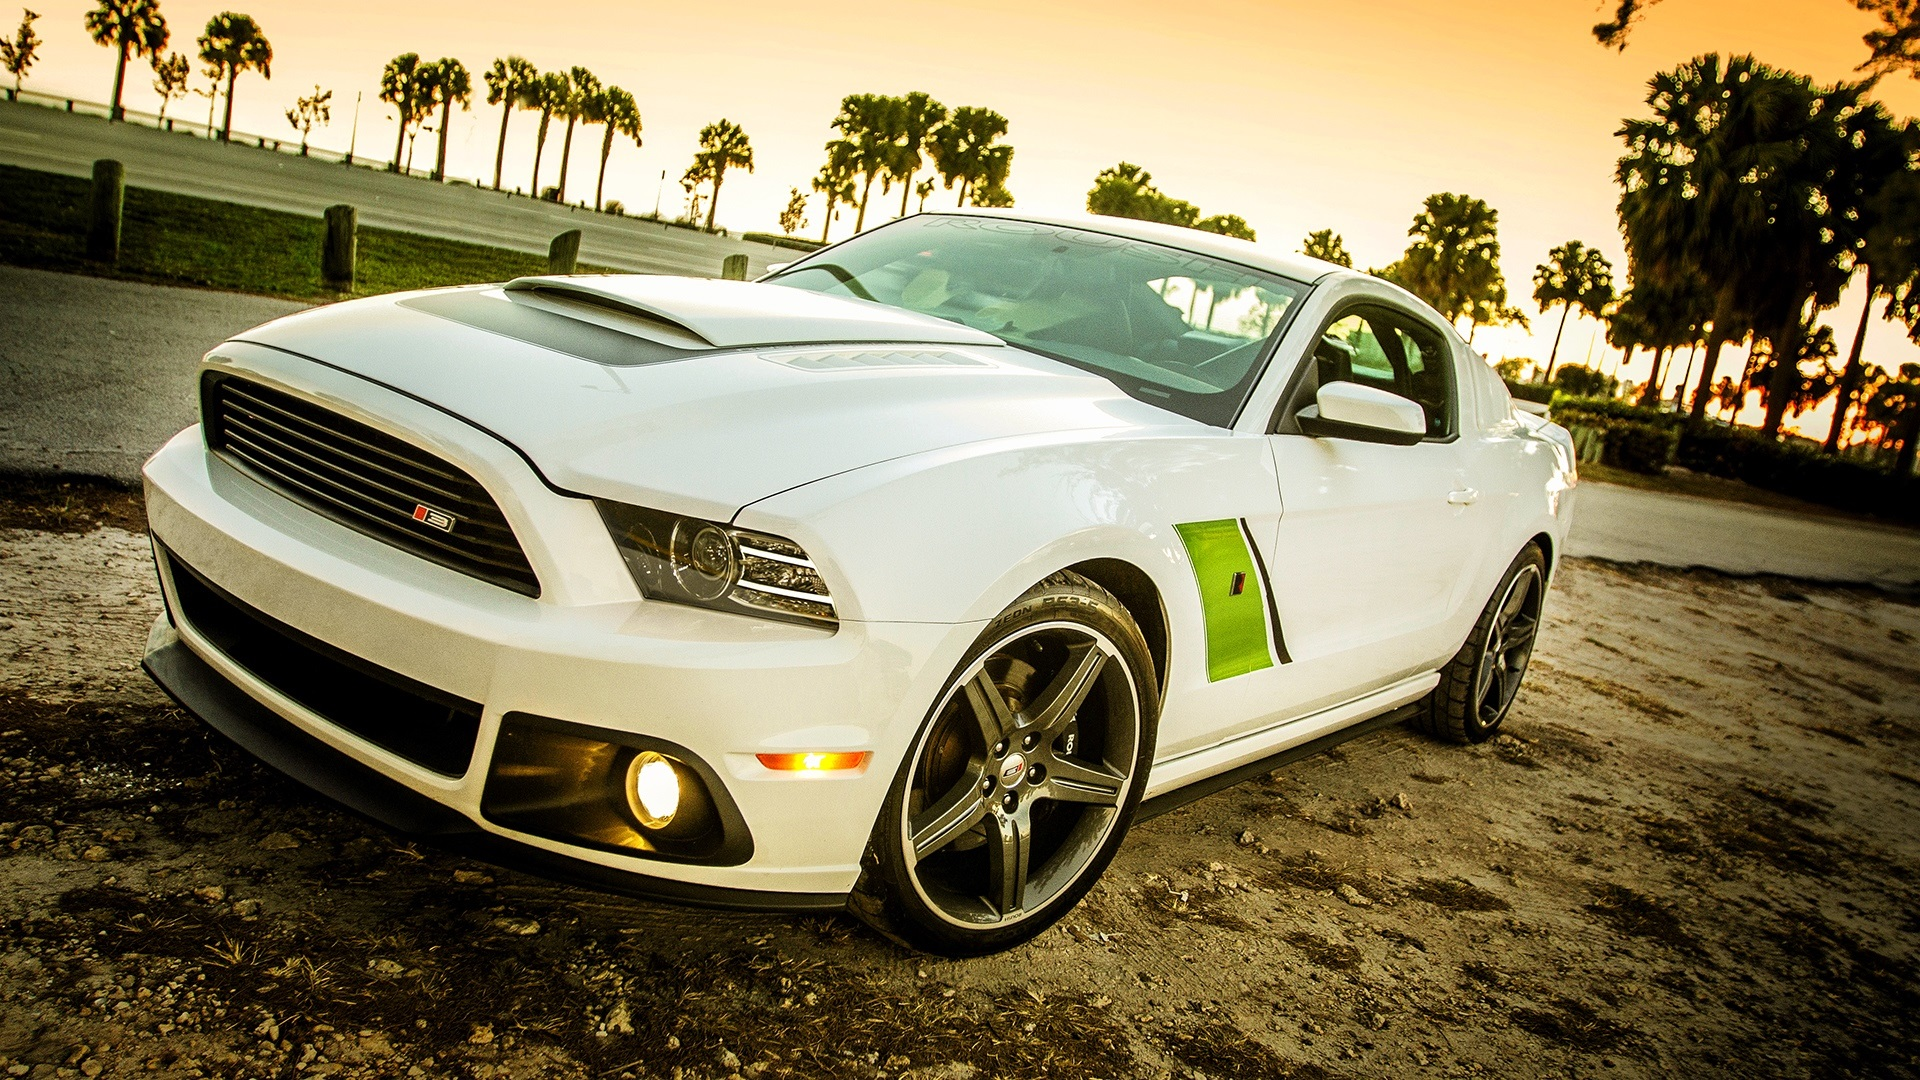 Roush Stage 3 Ford Mustang 2009 Wallpaper 1920x1080